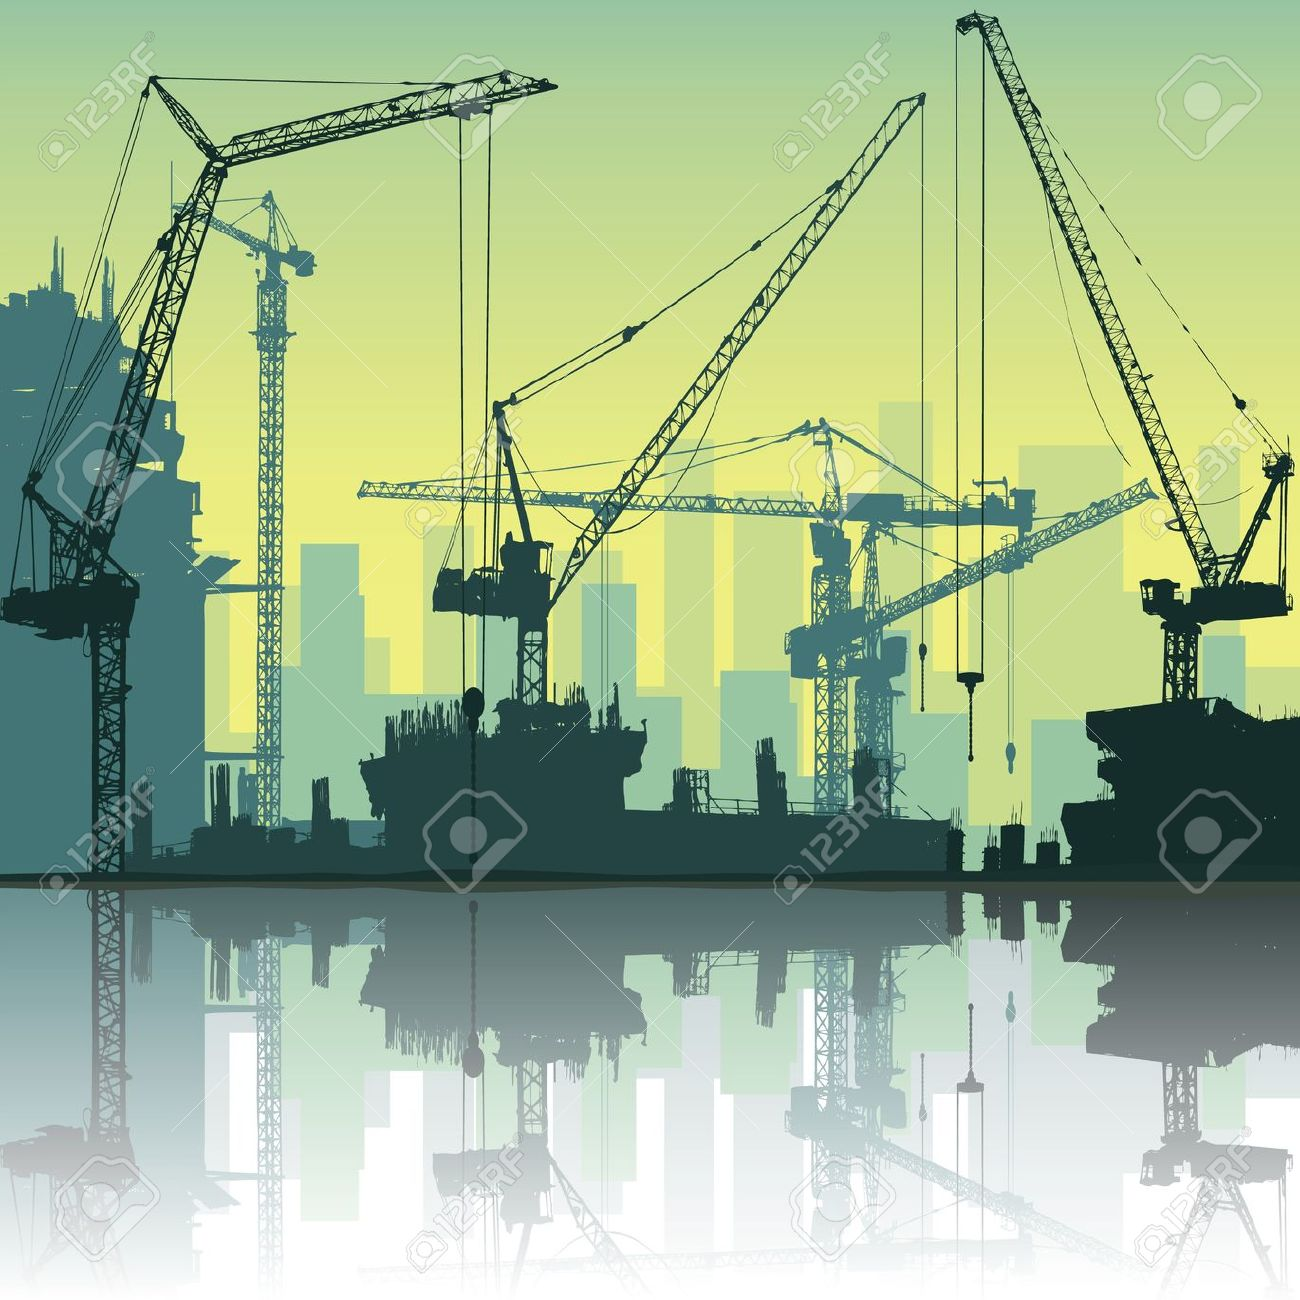 Construction site background clipart svg free Lots Of Tower Cranes On Construction Site With Reflection In ... svg free